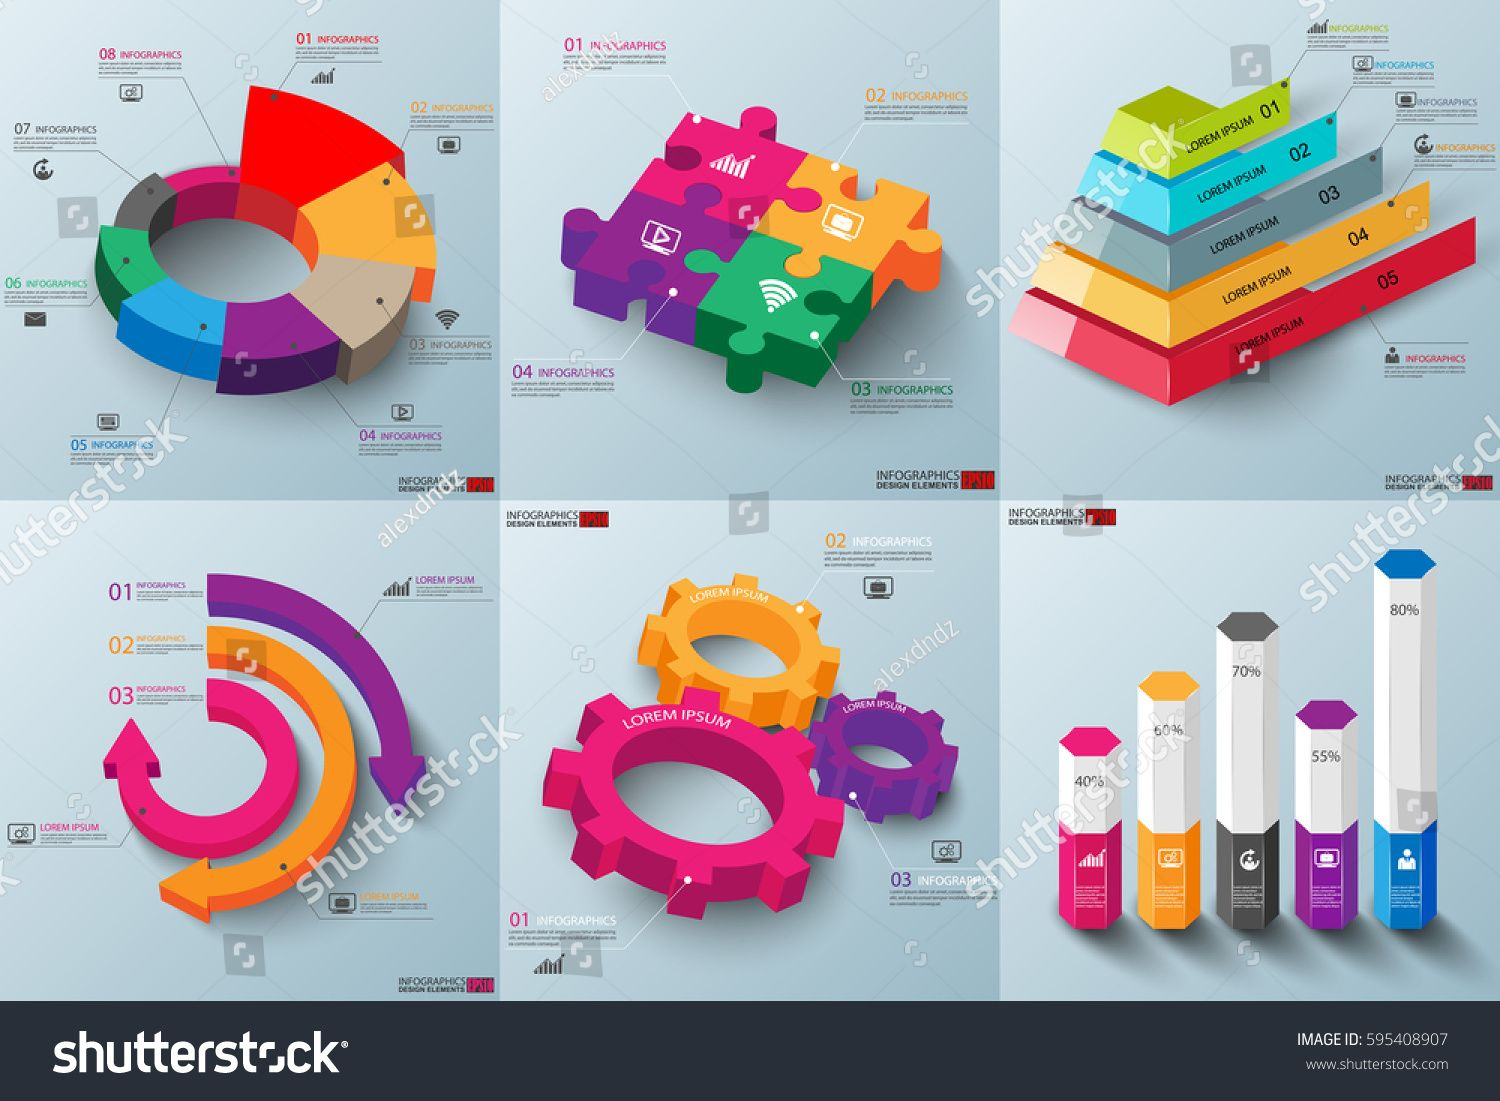 Set Of 3d Paper Infographic Elements Data Visualization Vector Pyramid Diagram Template Design Business Concept Steps Or Processes Workflow Hexagon Box